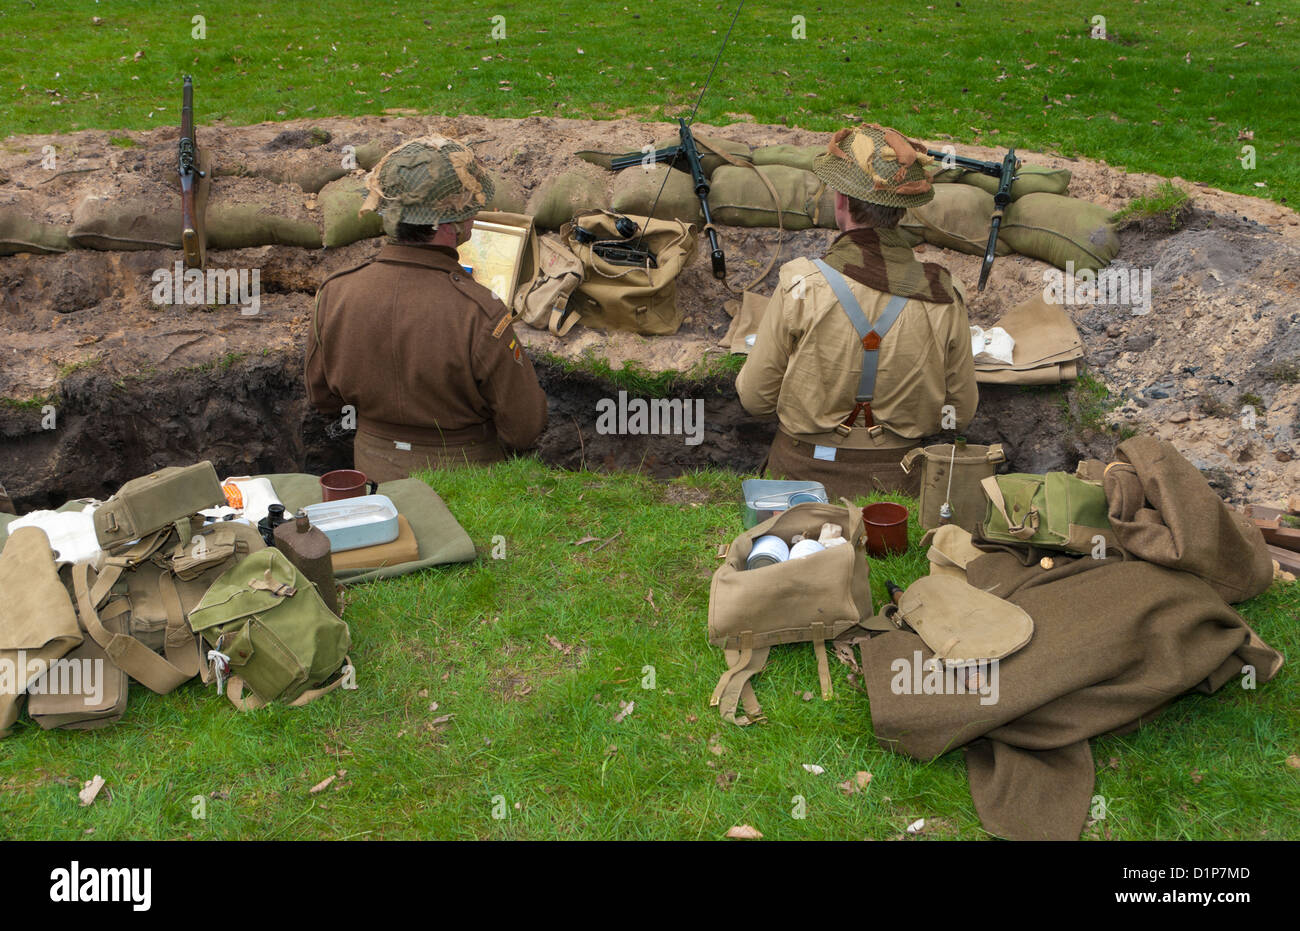 two soldiers in classic uniforms demonstratiing the life in a world war I trench - Stock Image